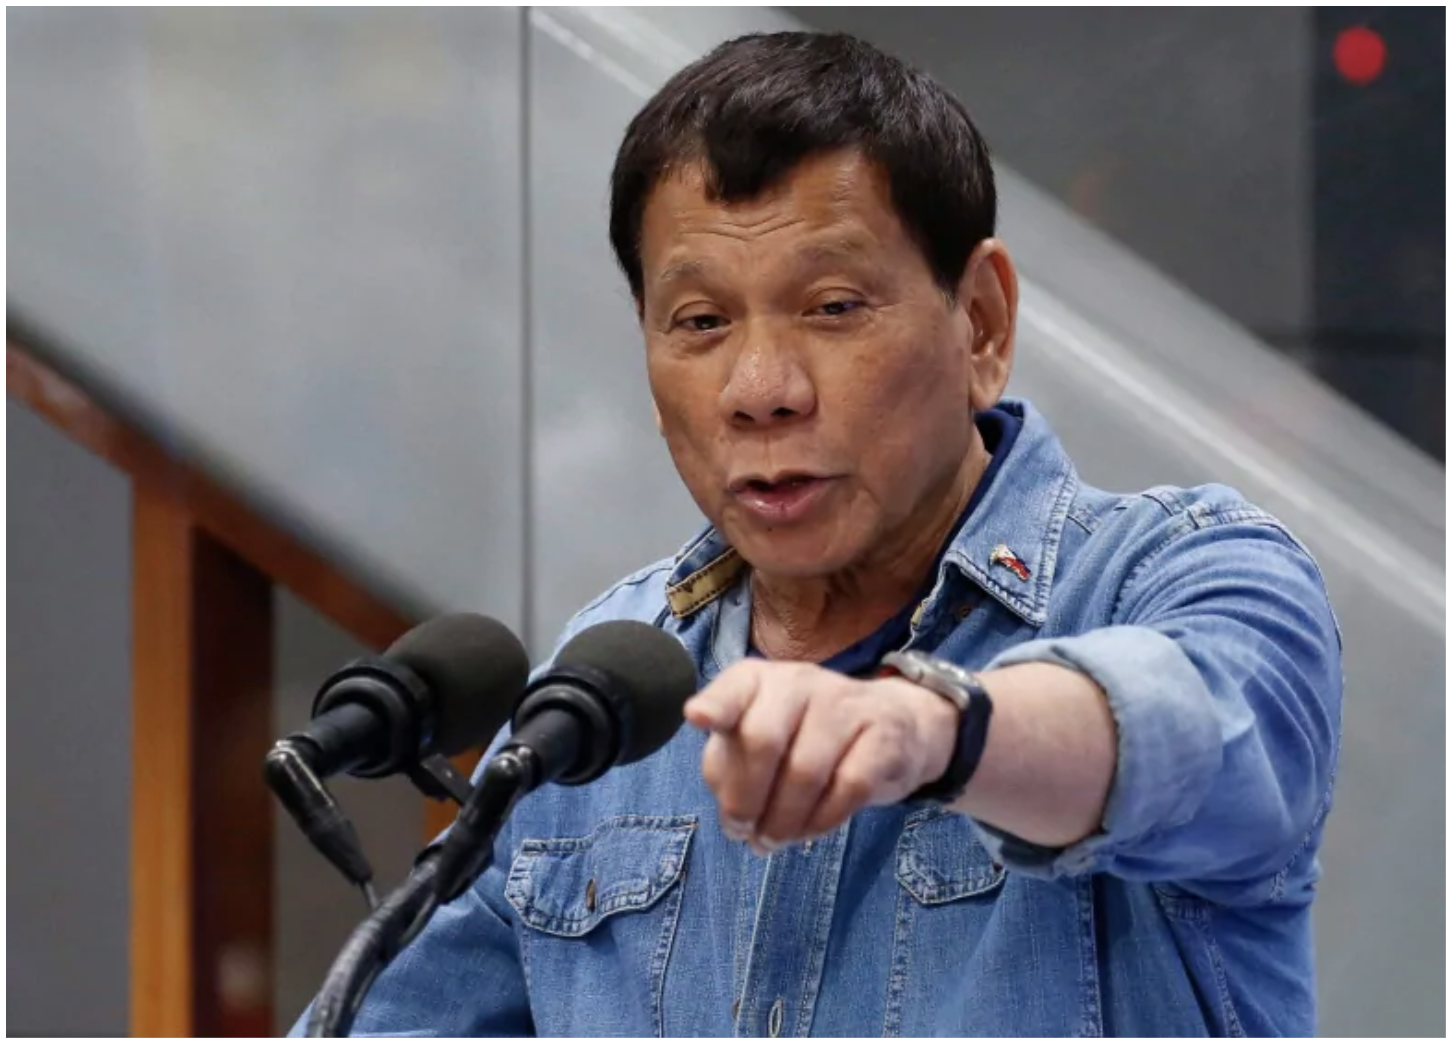 "The president of the Philippines, Rodrigo Duterte, says that if Canada doesn't take back tonnes of trash within the next week, he will ""declare war"" and ship the containers back himself. (Bullit Marquez/Associated Press)"